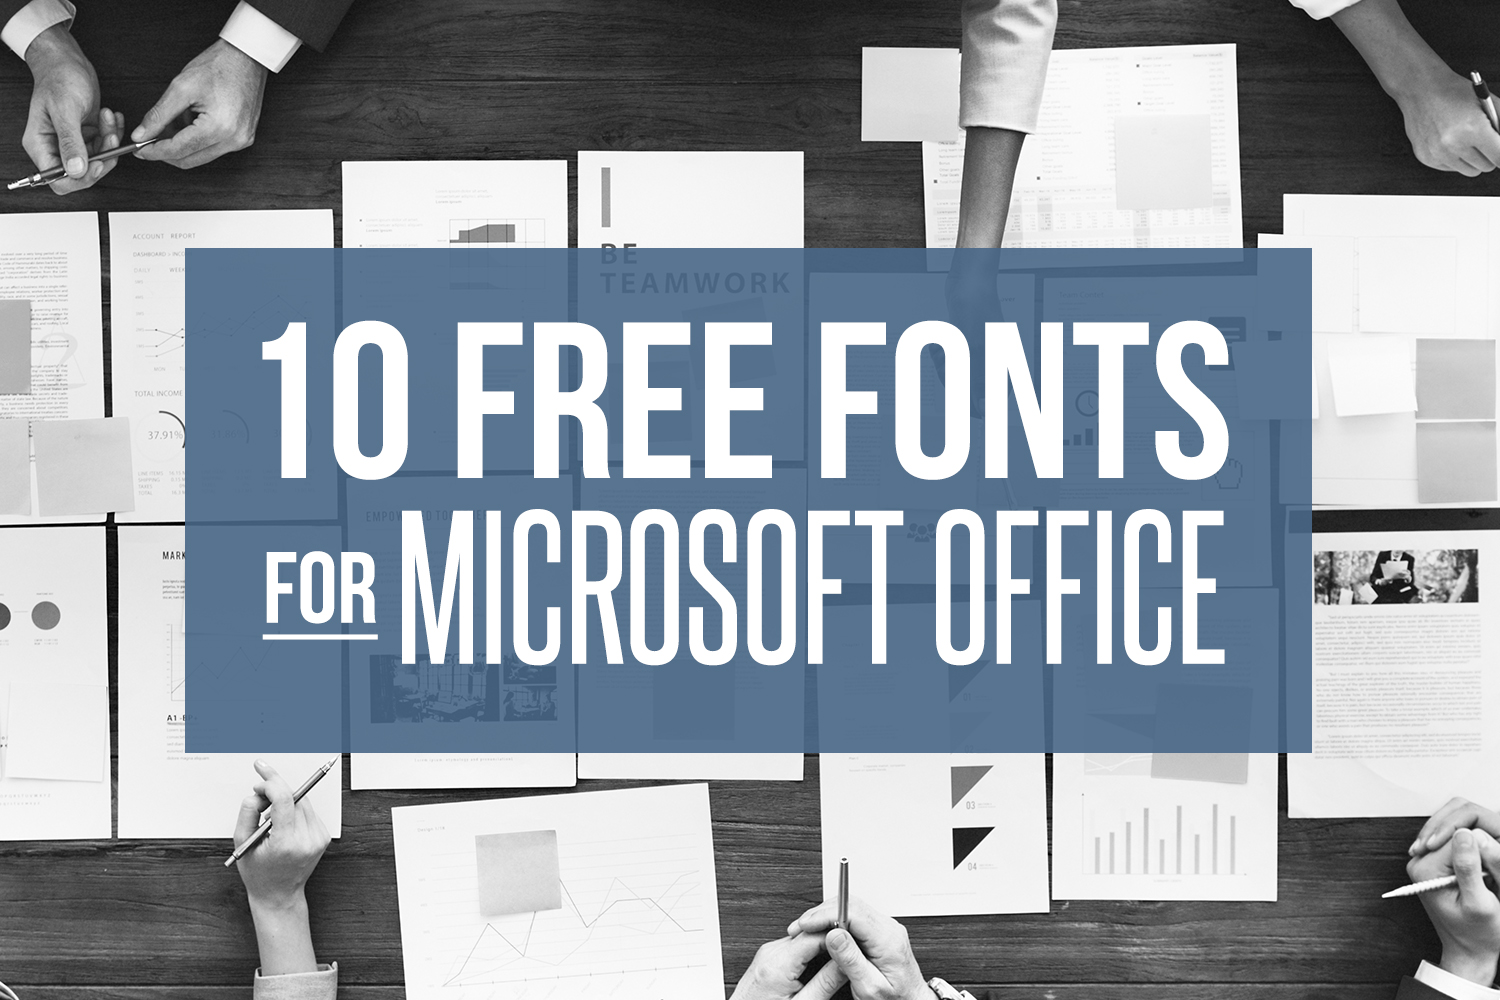 10 FREE fonts for Microsoft Office